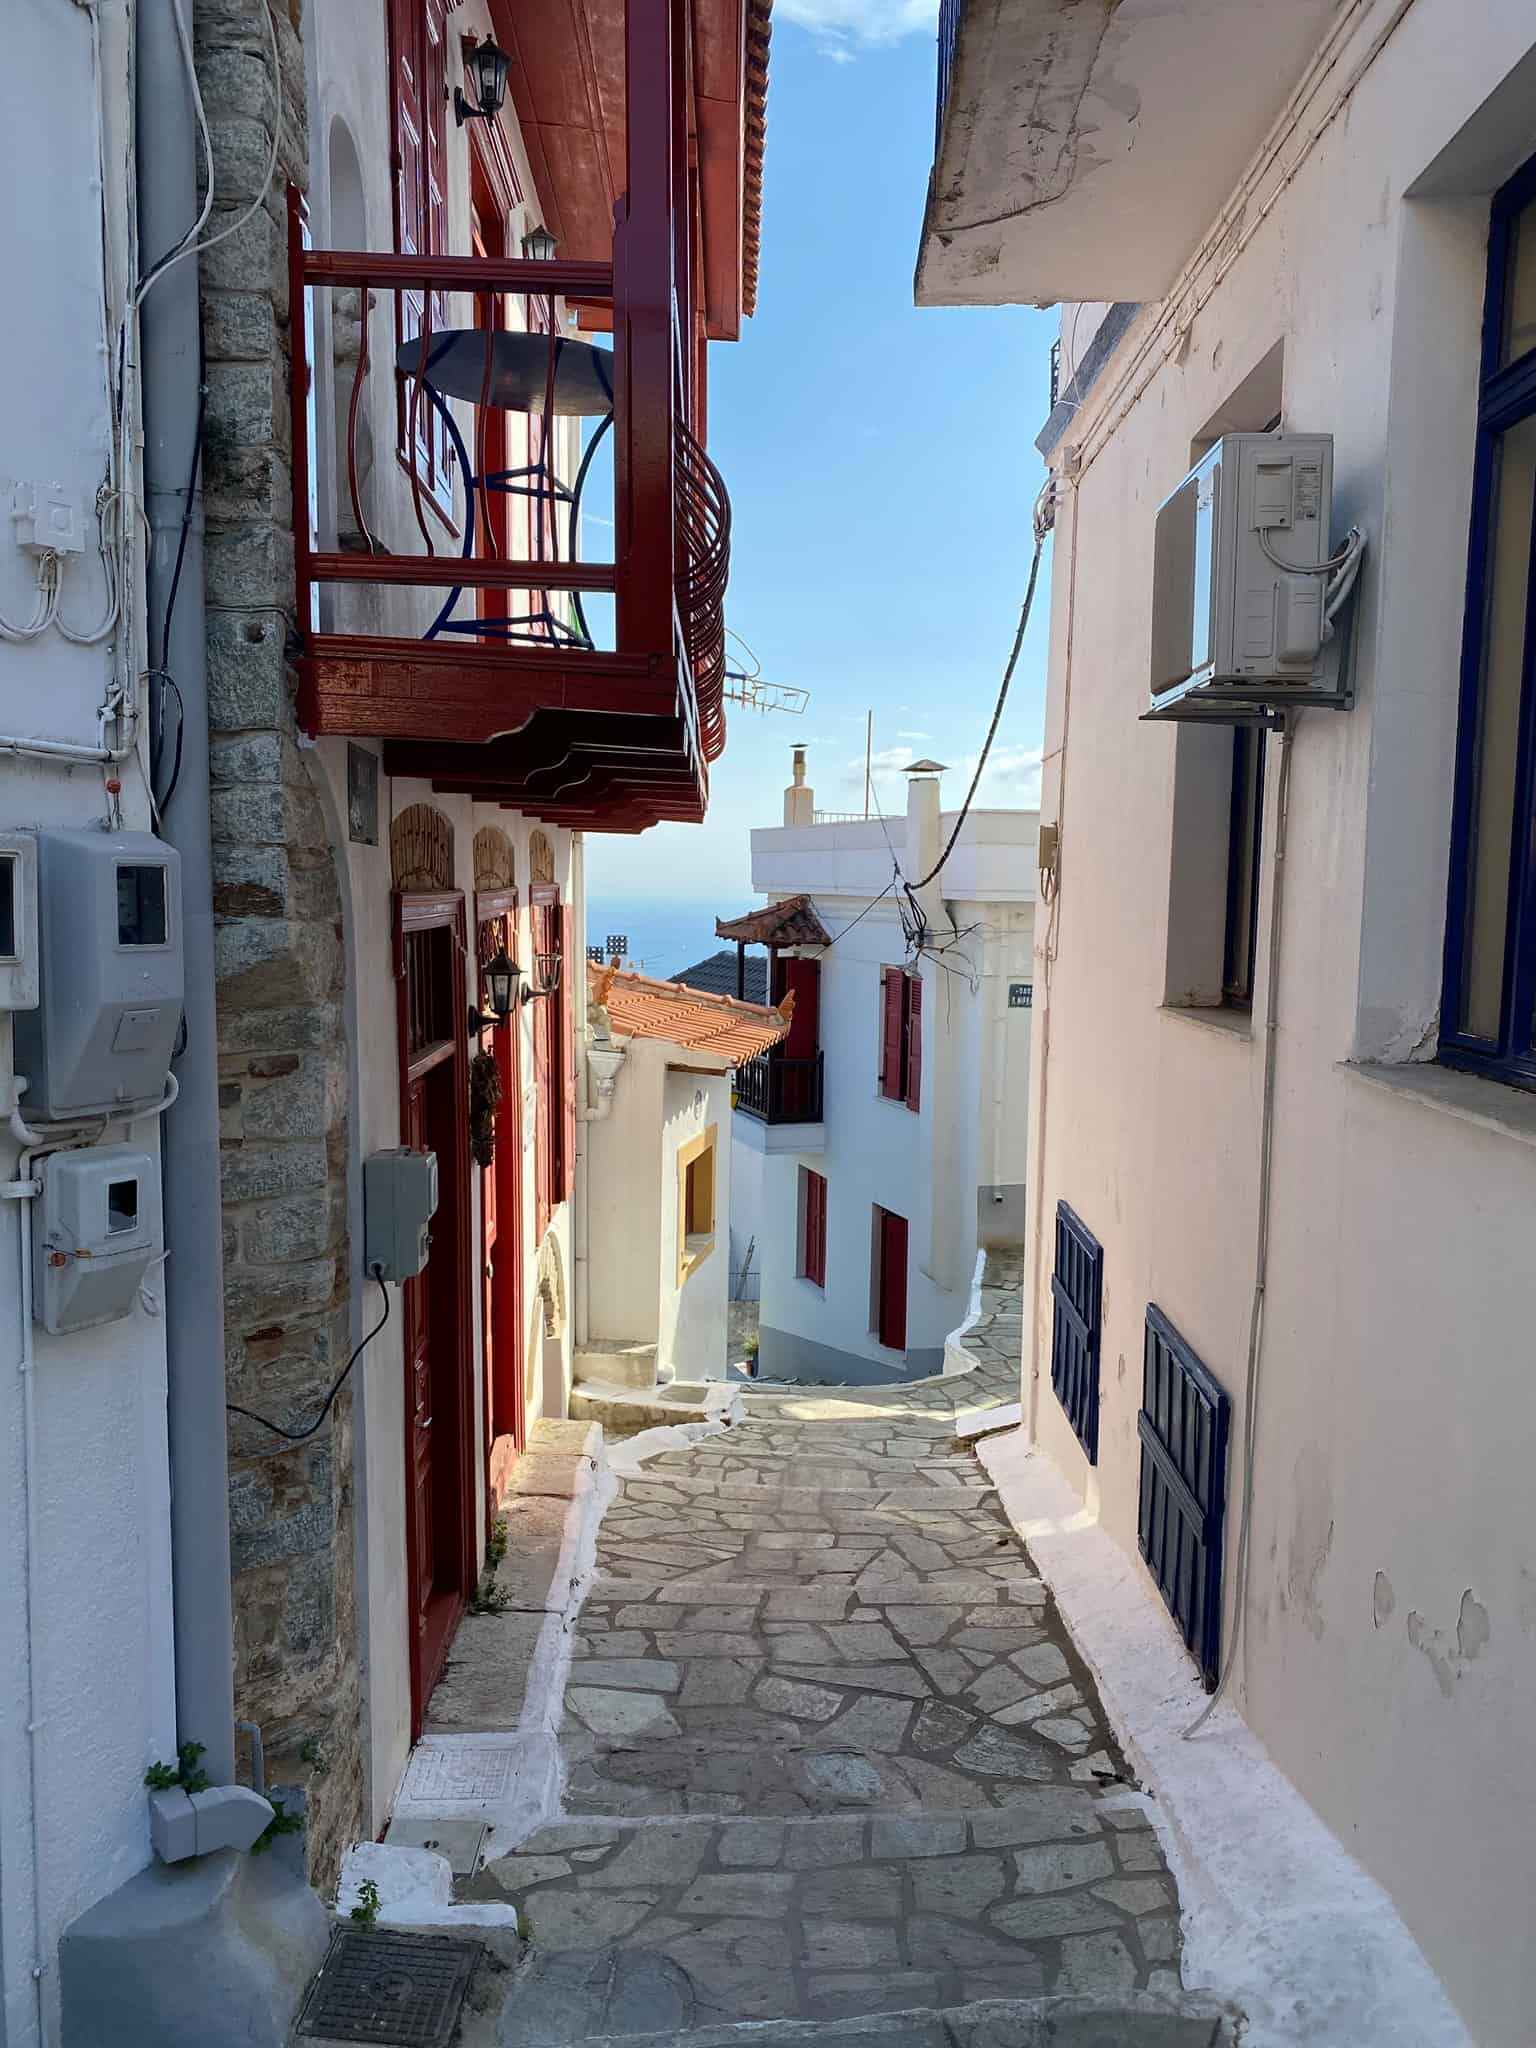 Where to Stay in Skopelos: Glossa village